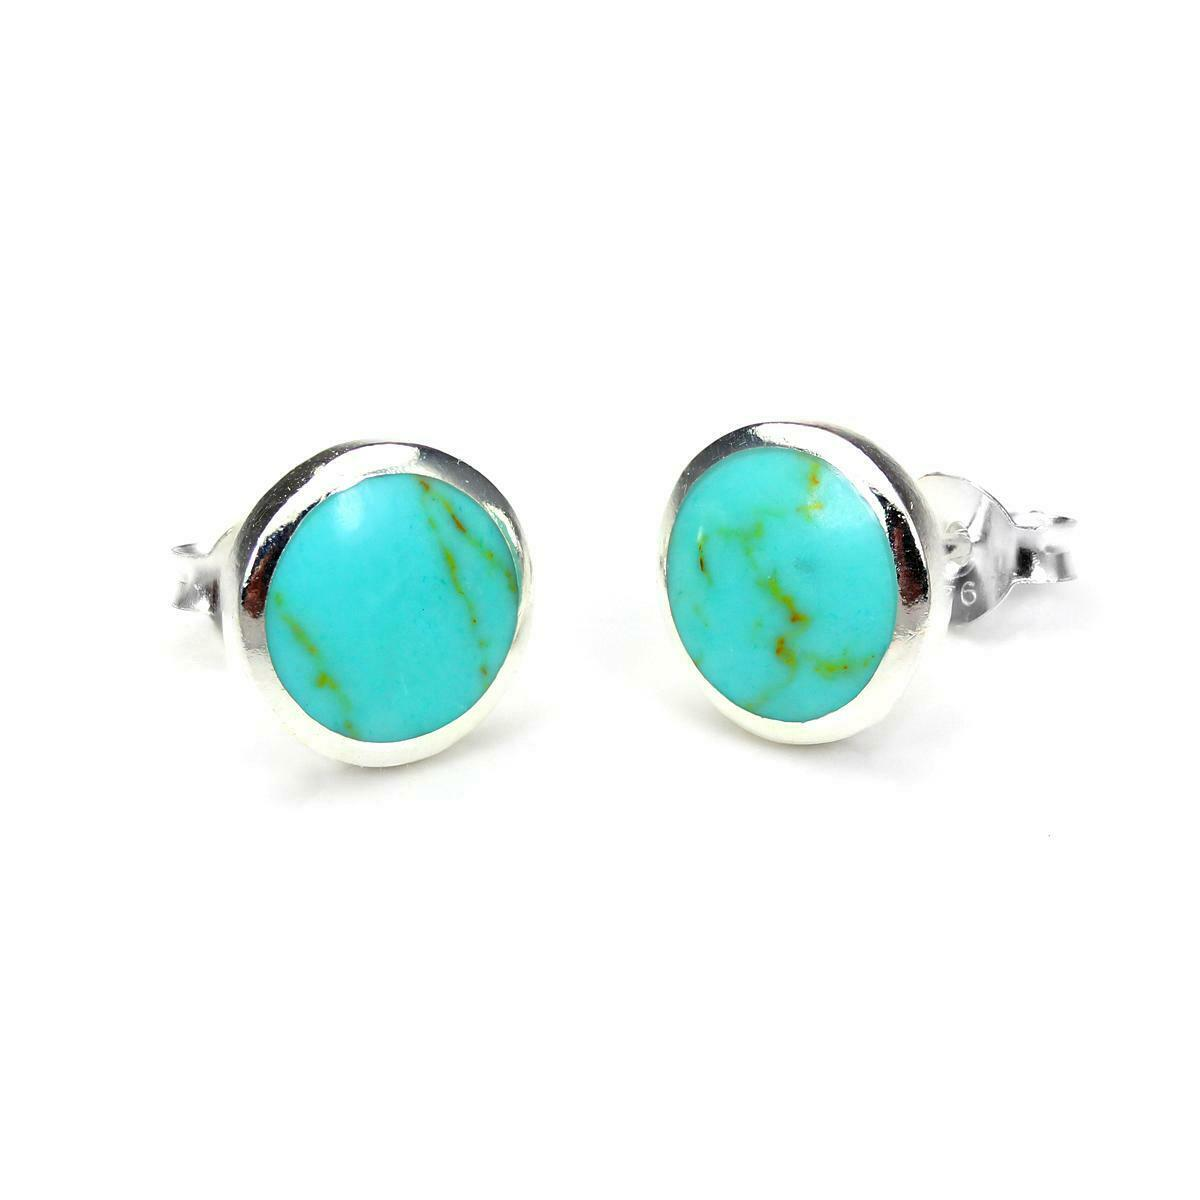 925 Sterling Silver /& Turquoise Inlay 9mm Round Stud Earrings Studs Earring